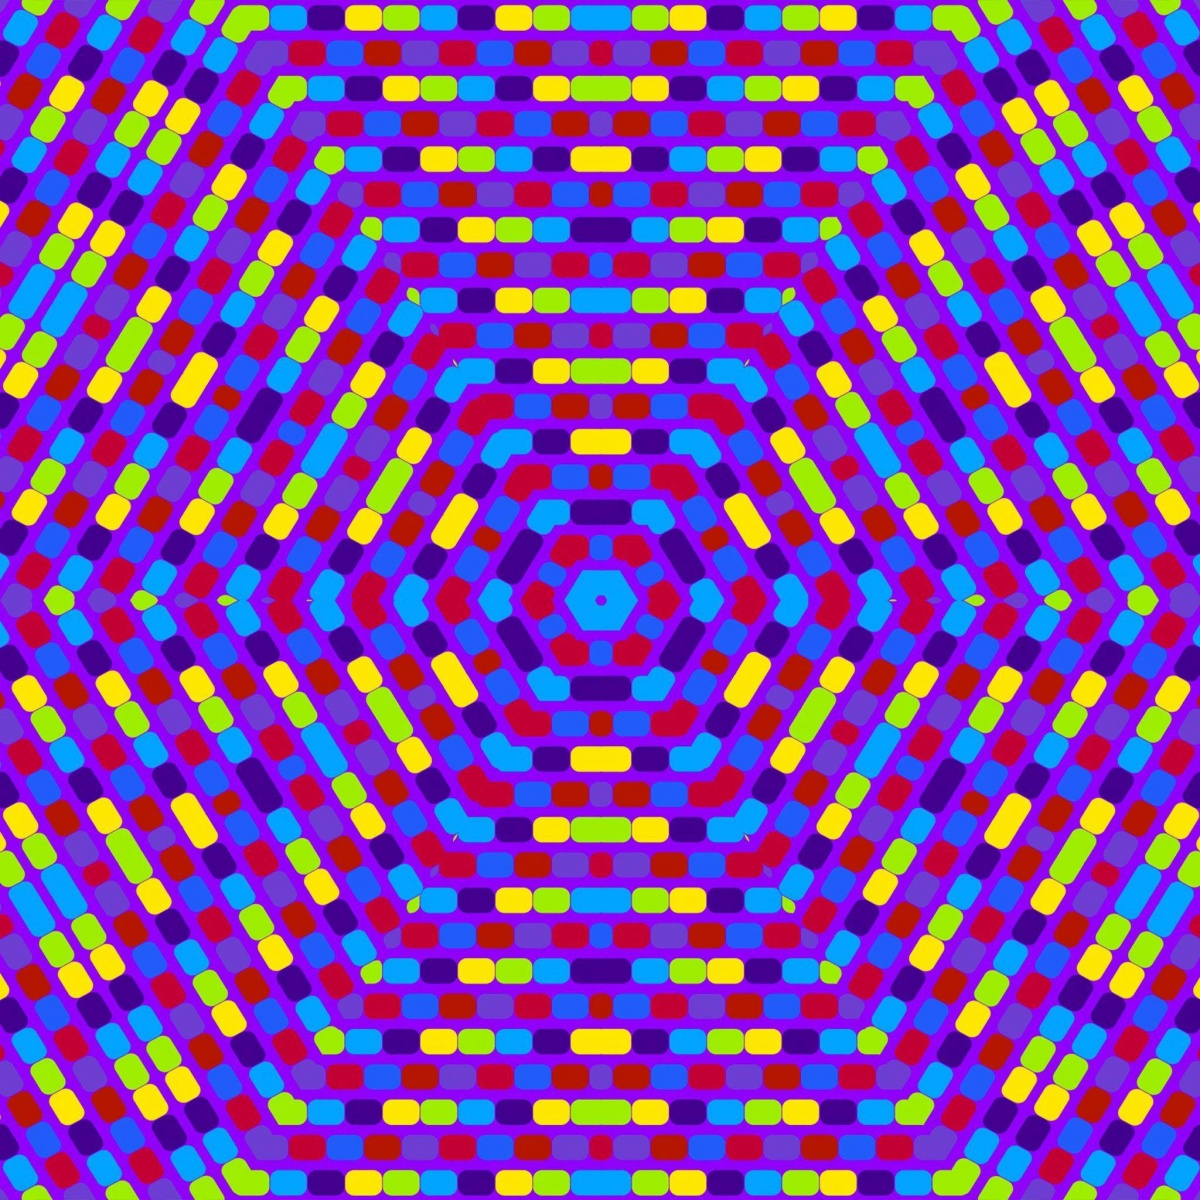 trippy backgrounds (9)